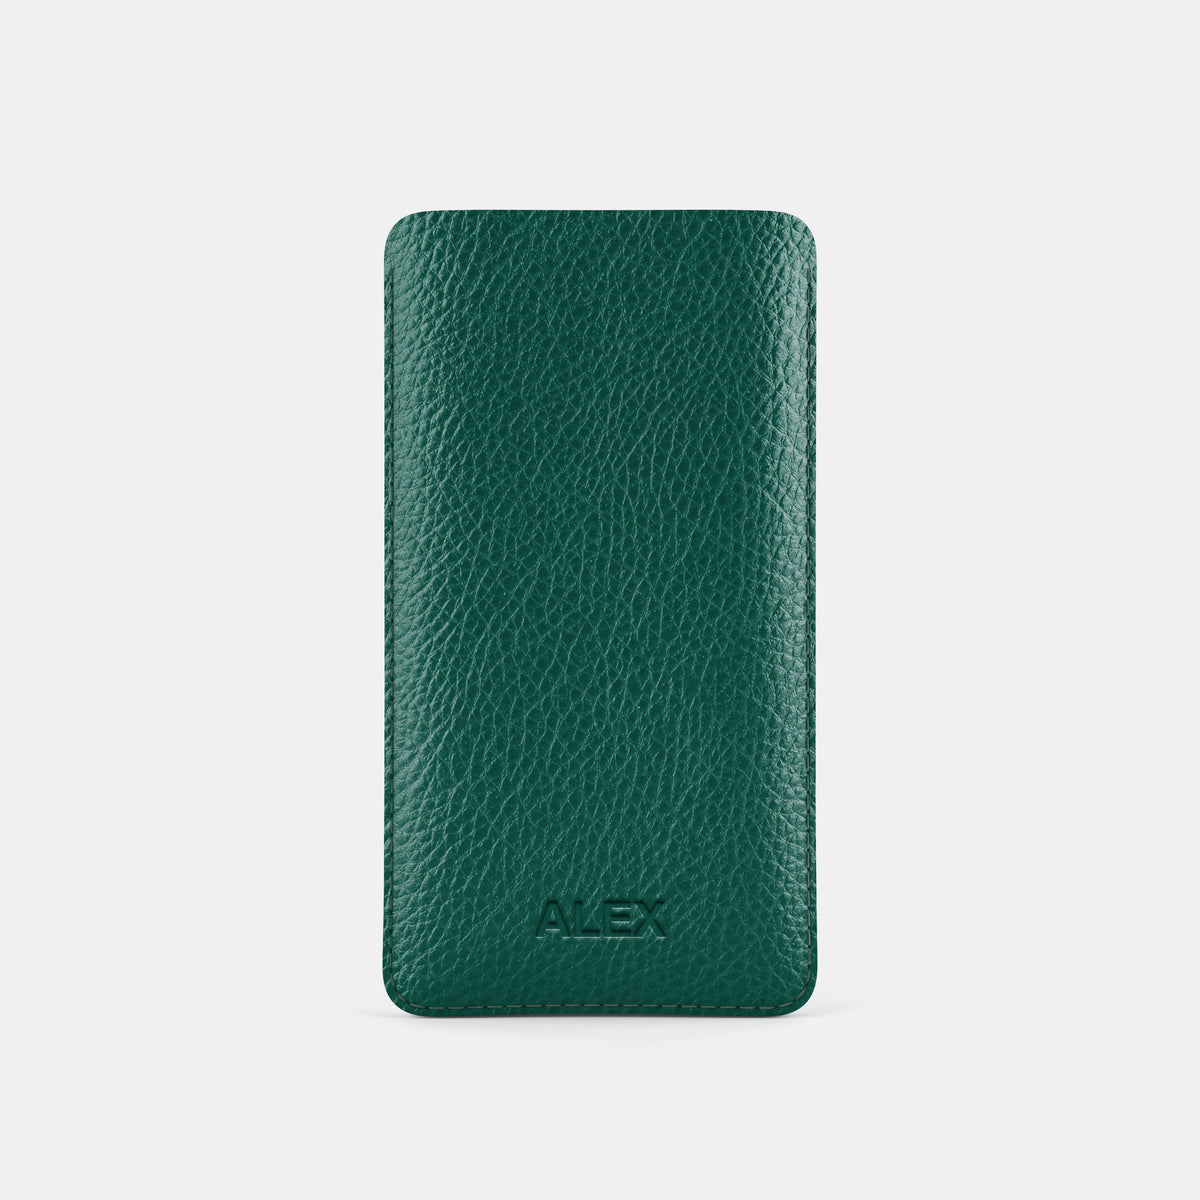 Phone Sleeve - Avocado and Orange - RYAN London